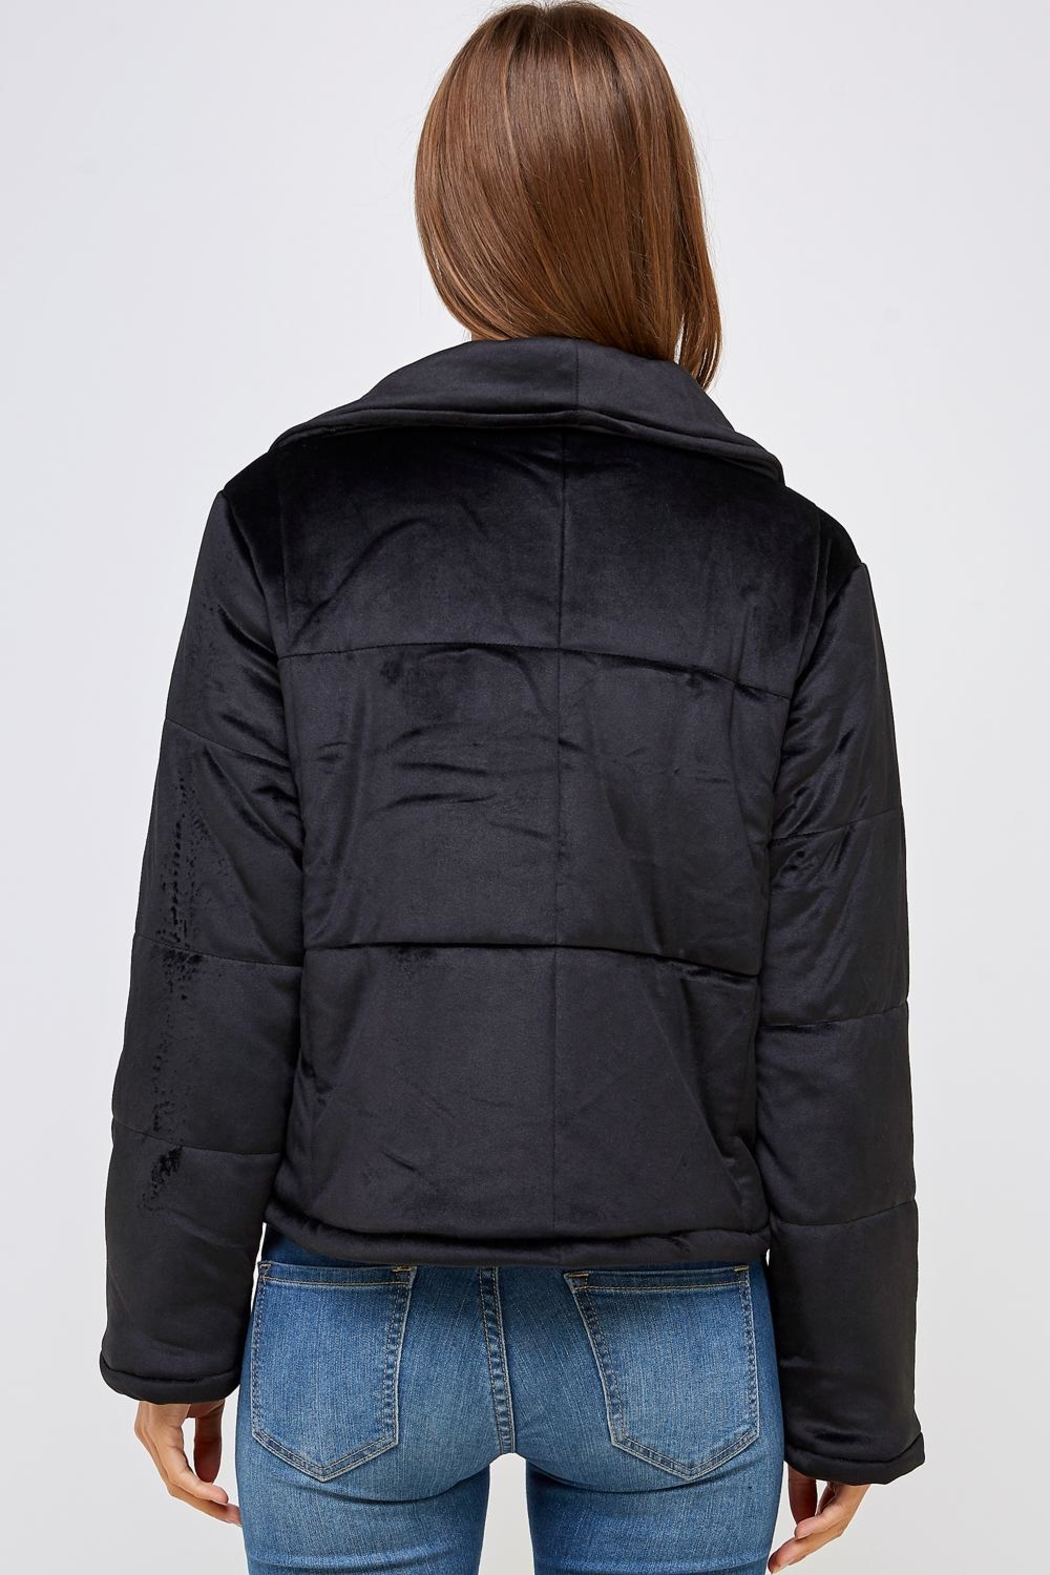 HYFVE Shawl Puffer Jacket - Back Cropped Image